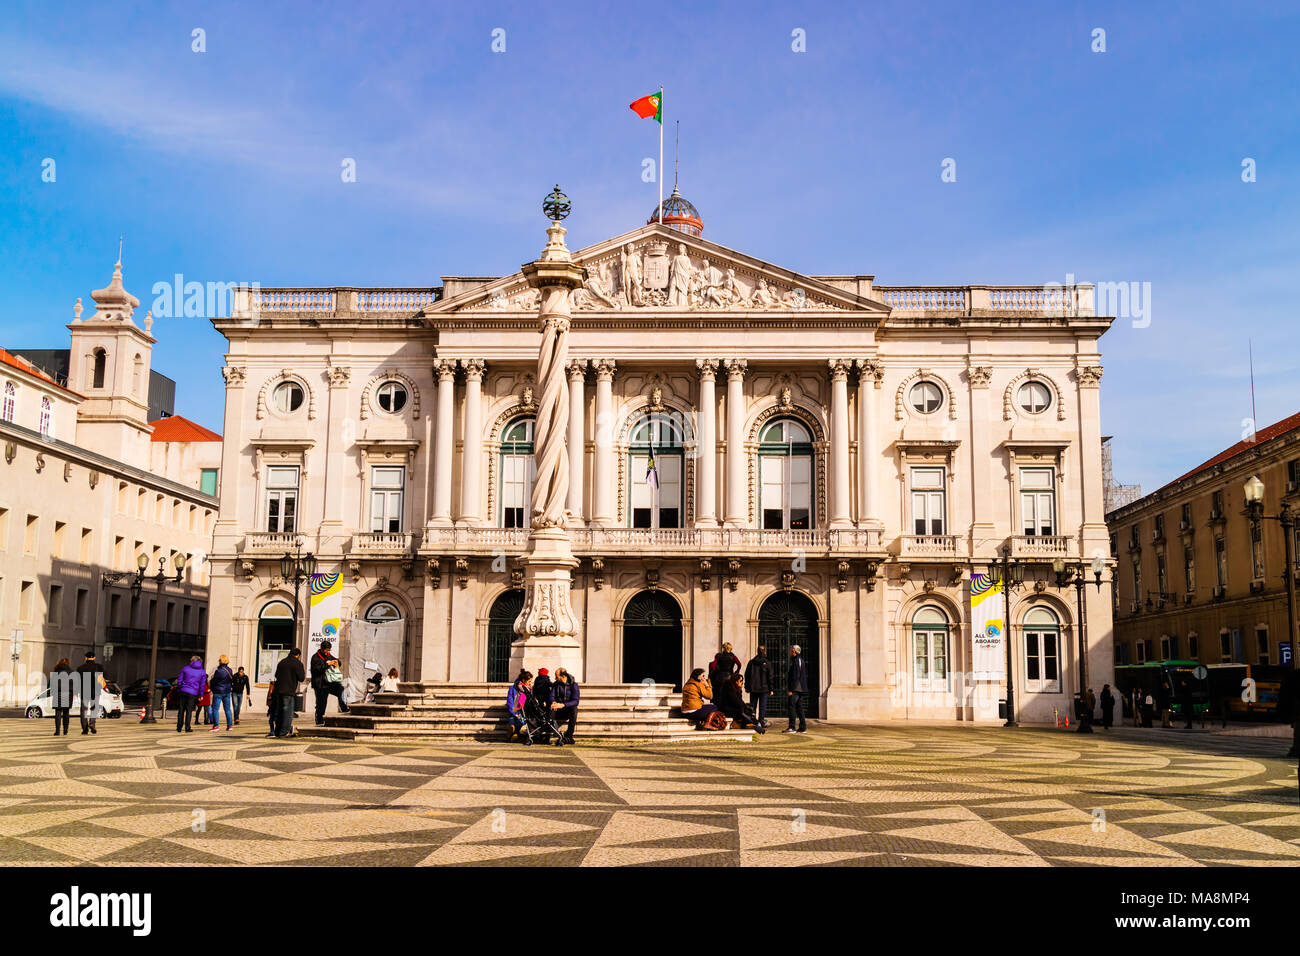 The Lisbon City Hall (Paos do Concelho de Lisboa) is the seat of the Lisbon municipal government. - Stock Image